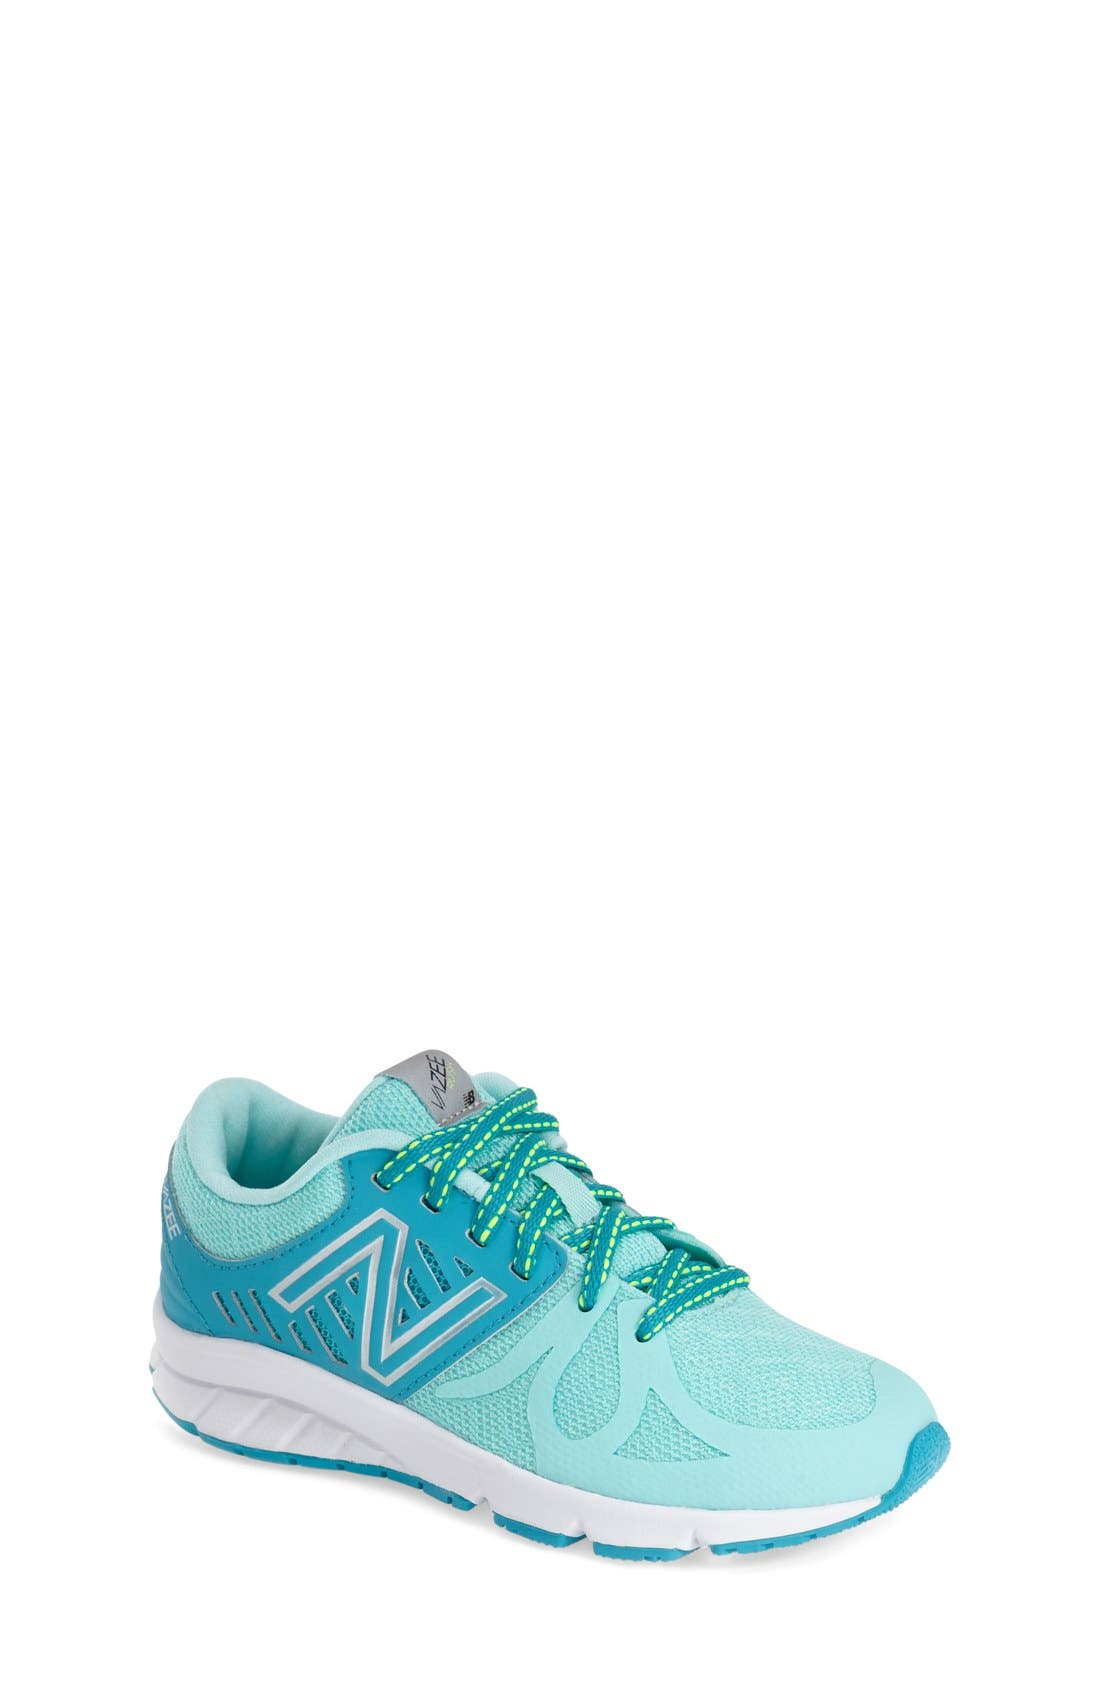 '200 Rush Vazee' Athletic Shoe,                             Main thumbnail 1, color,                             SEA GLASS